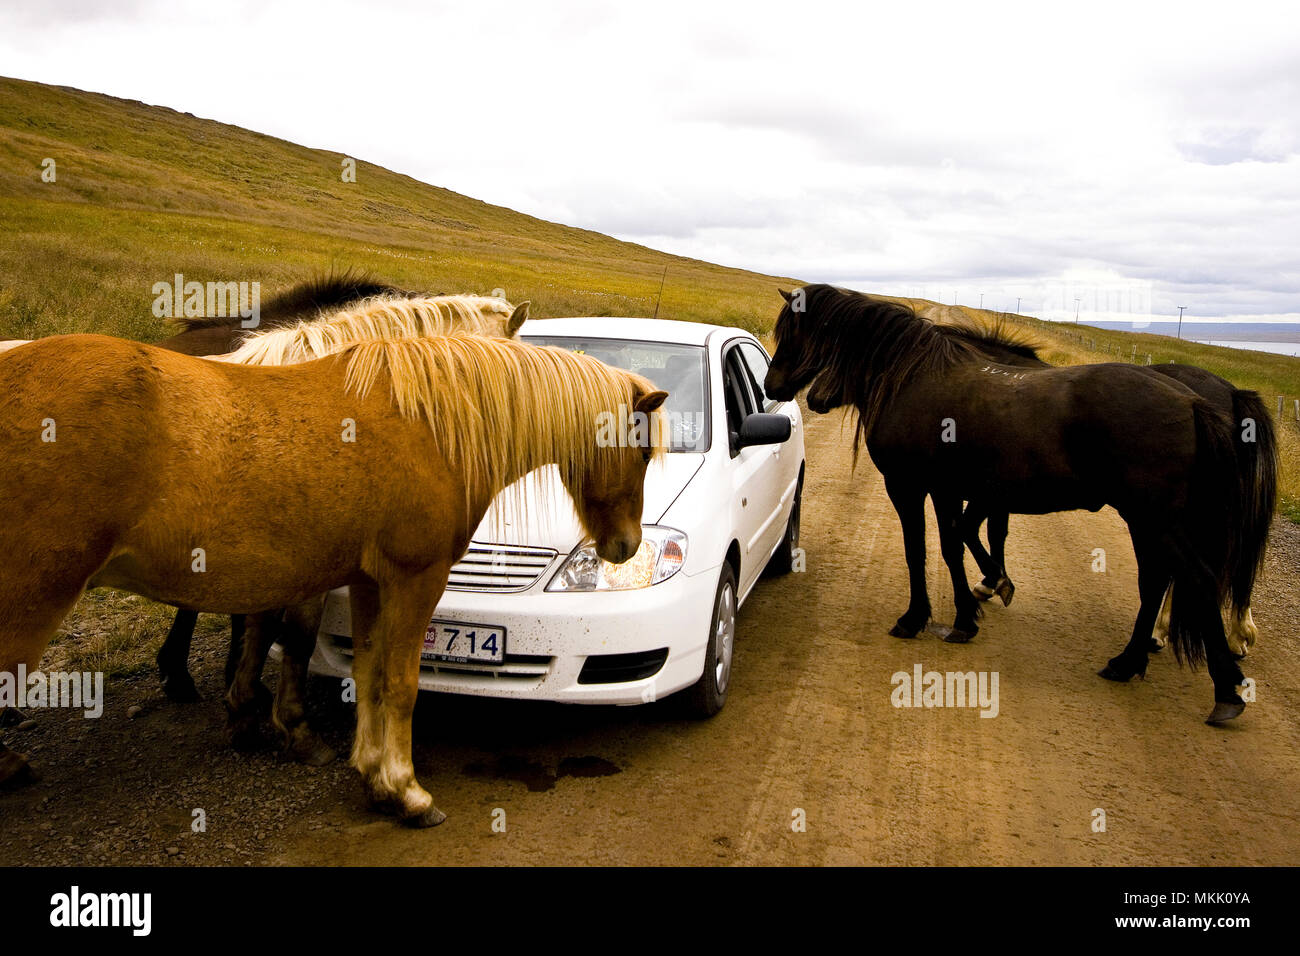 Horses attack car. Iceland - Stock Image